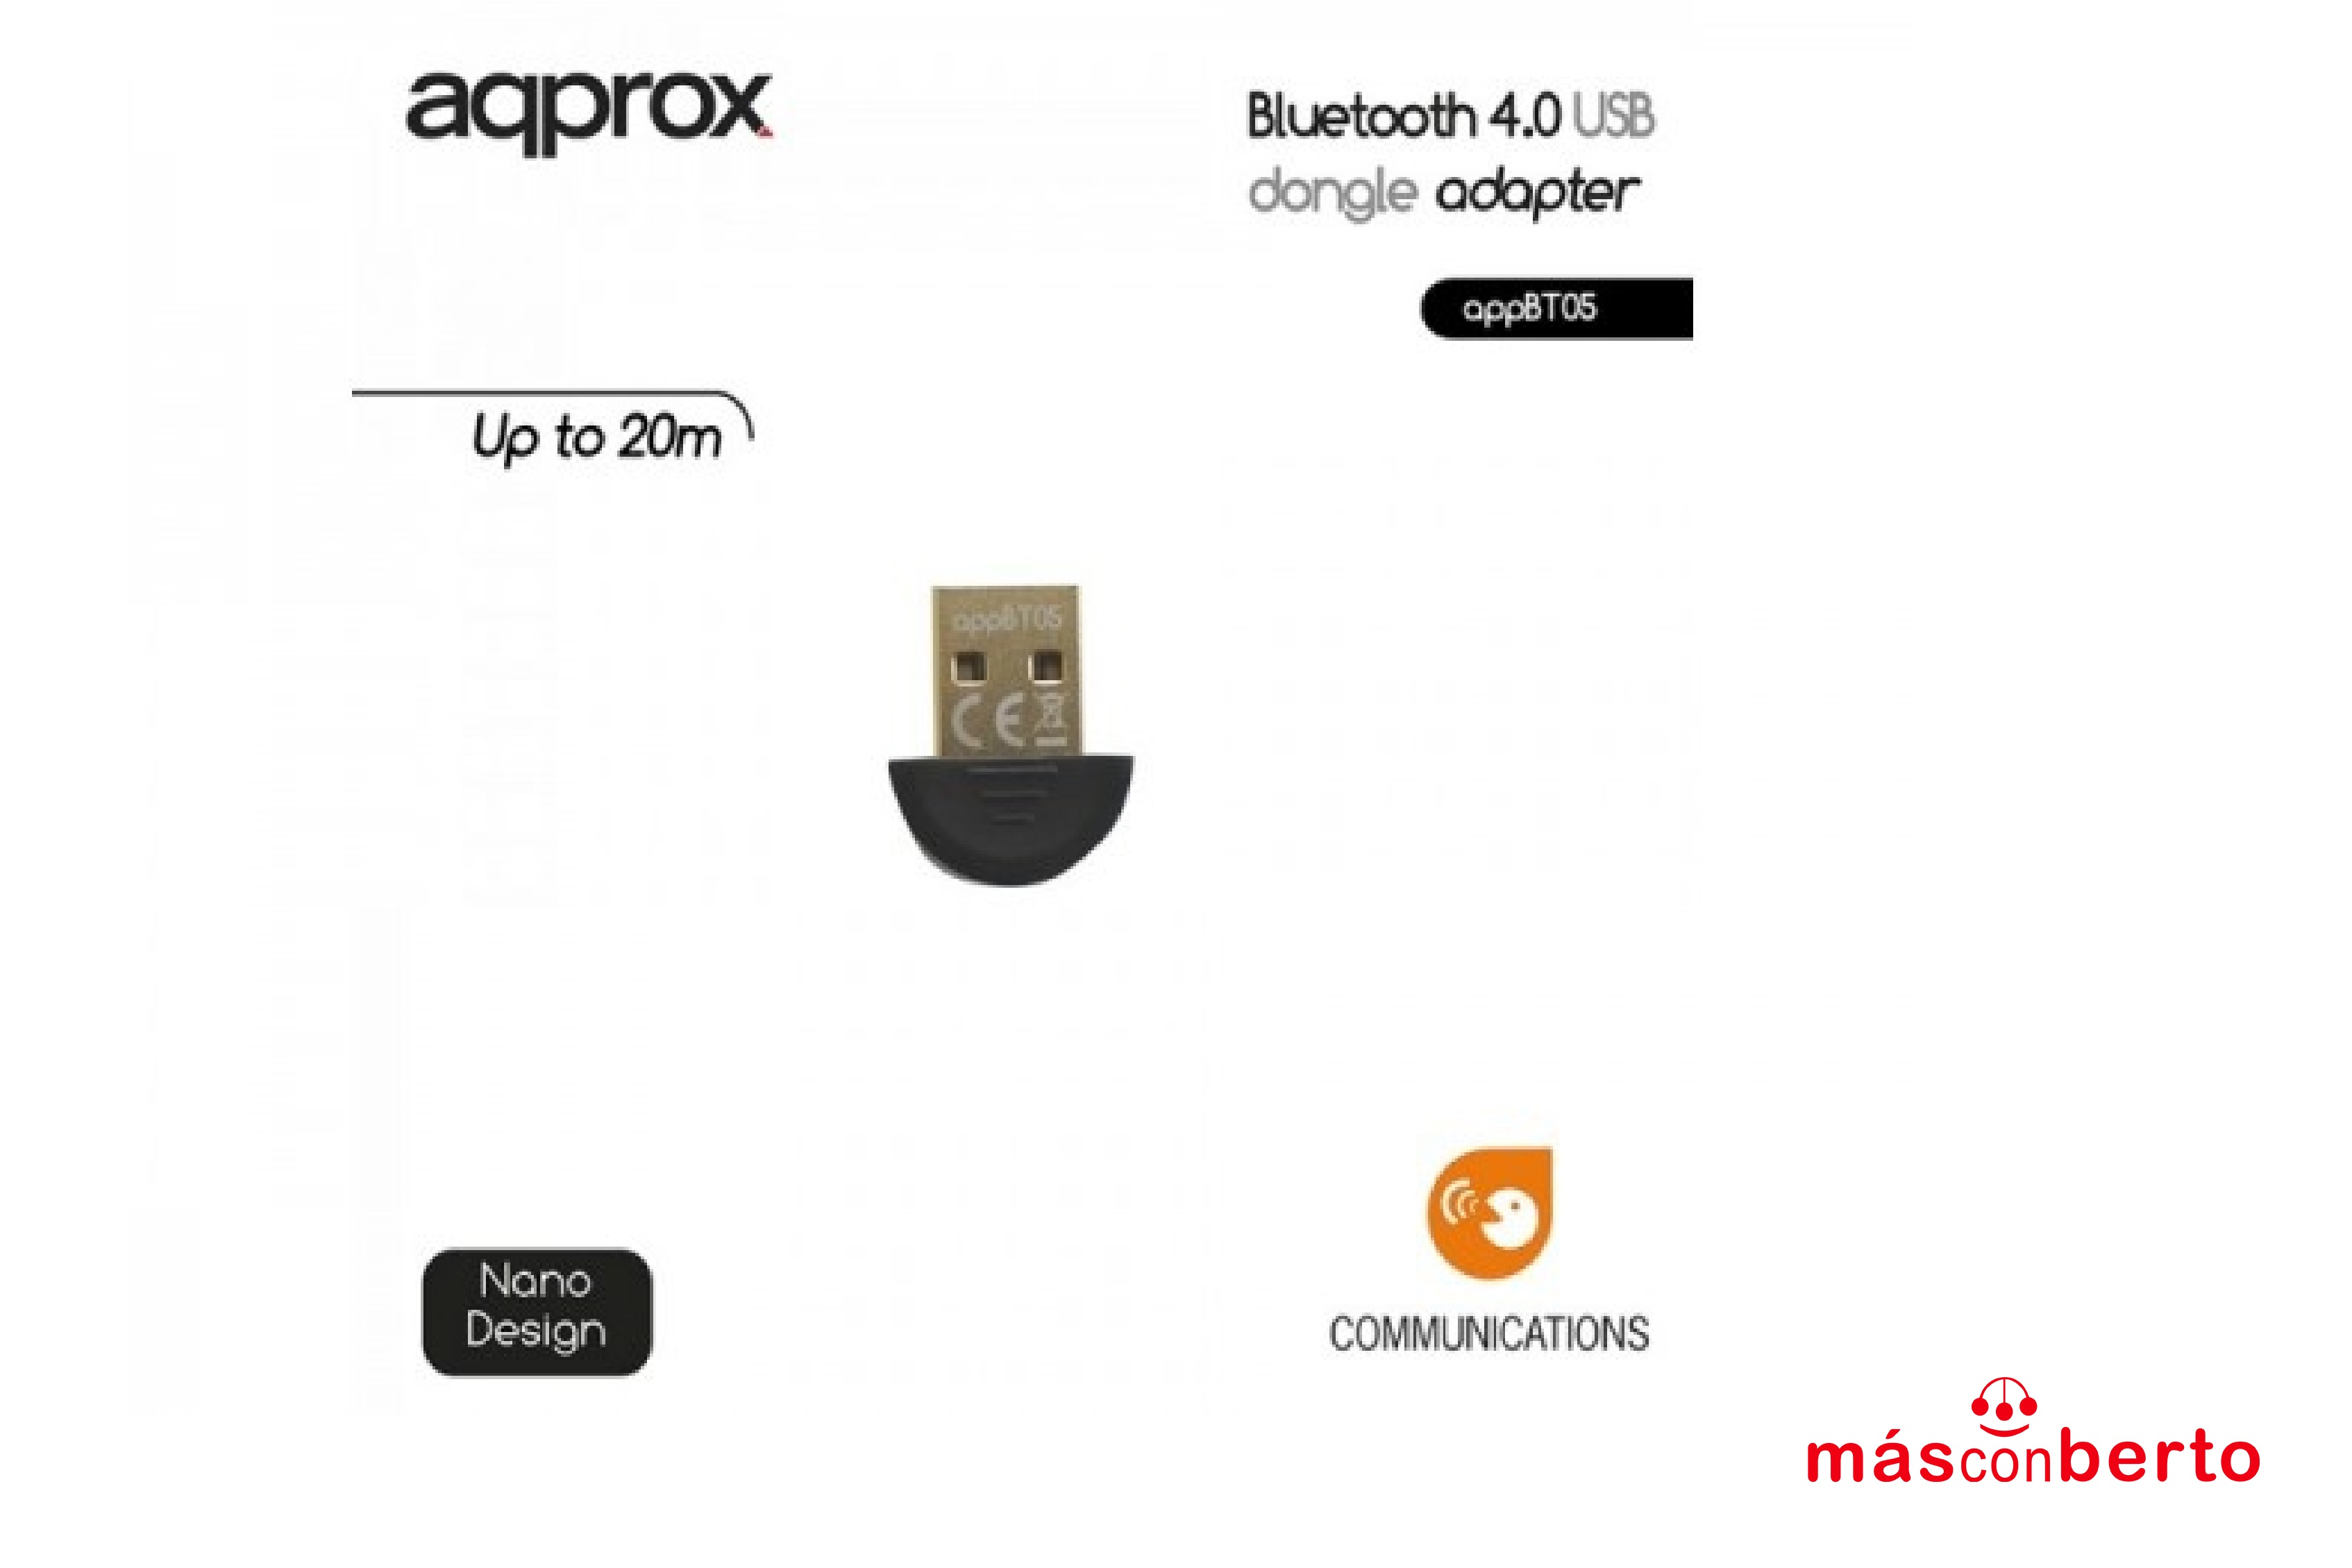 Adaptador Bluetooth 4.0 USB...